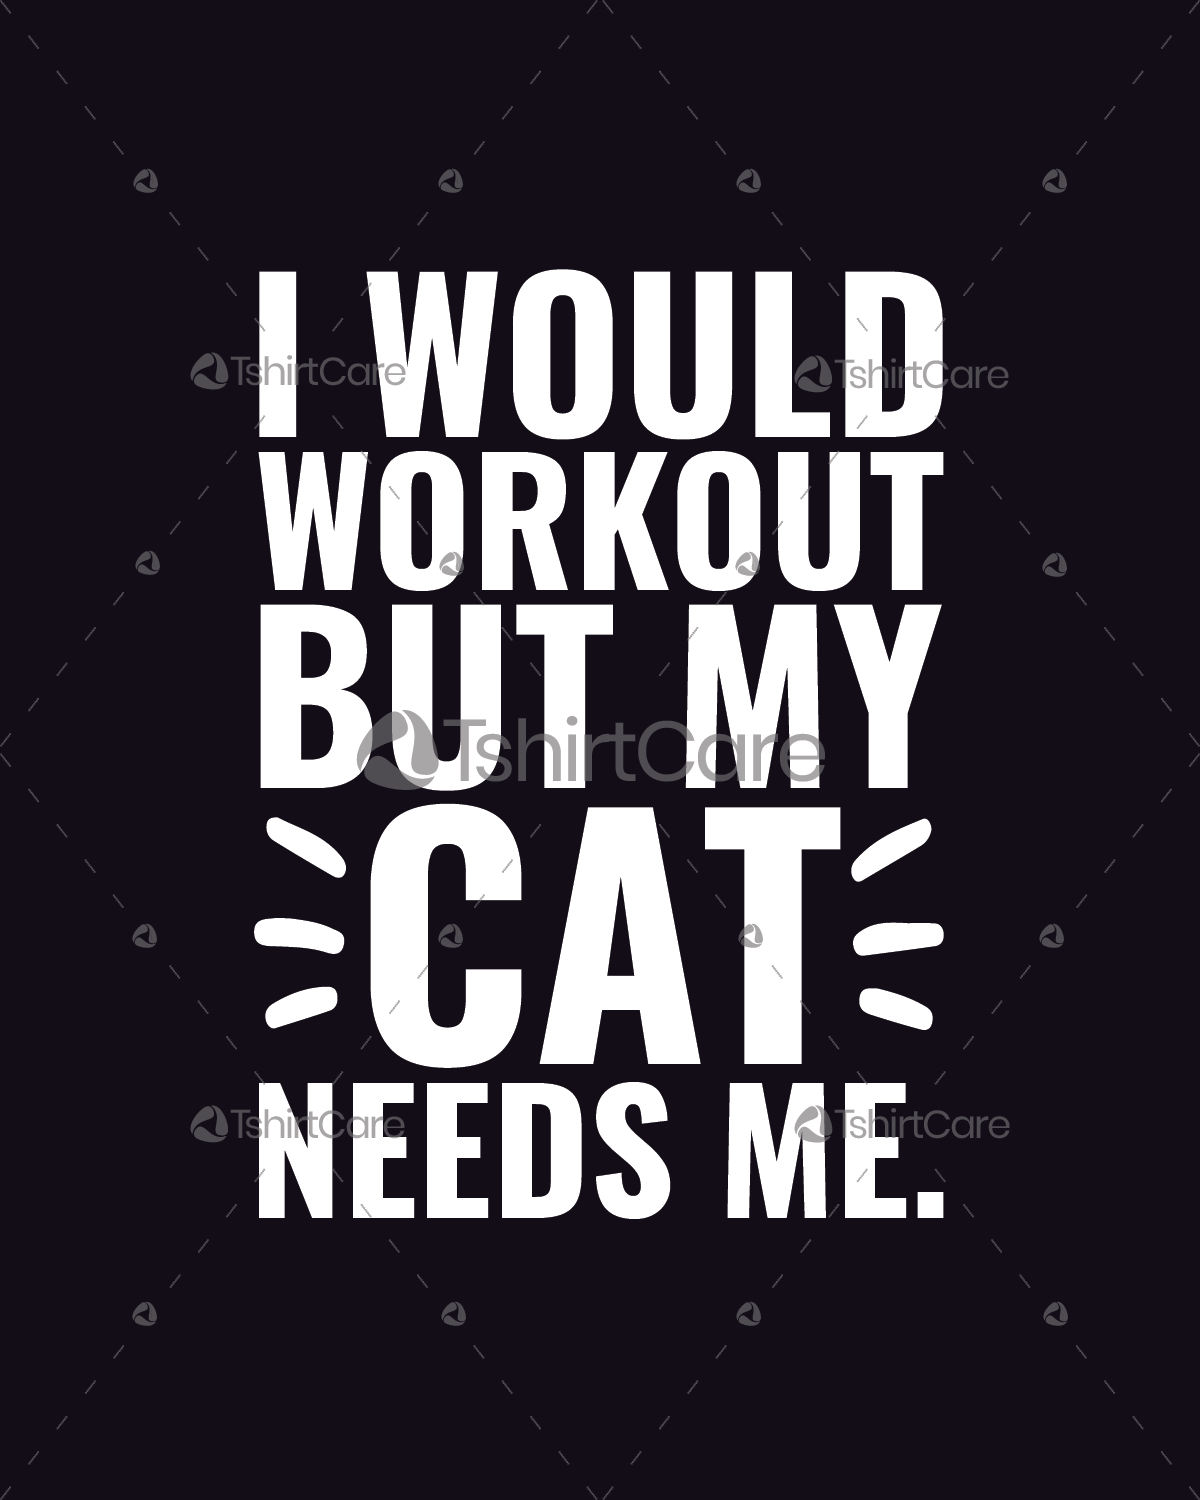 286d7592 I would workout but my cat needs me T shirt Design for Cat Lover T-shirts,  Tops, Sweaters & Hoodies - TshirtCare